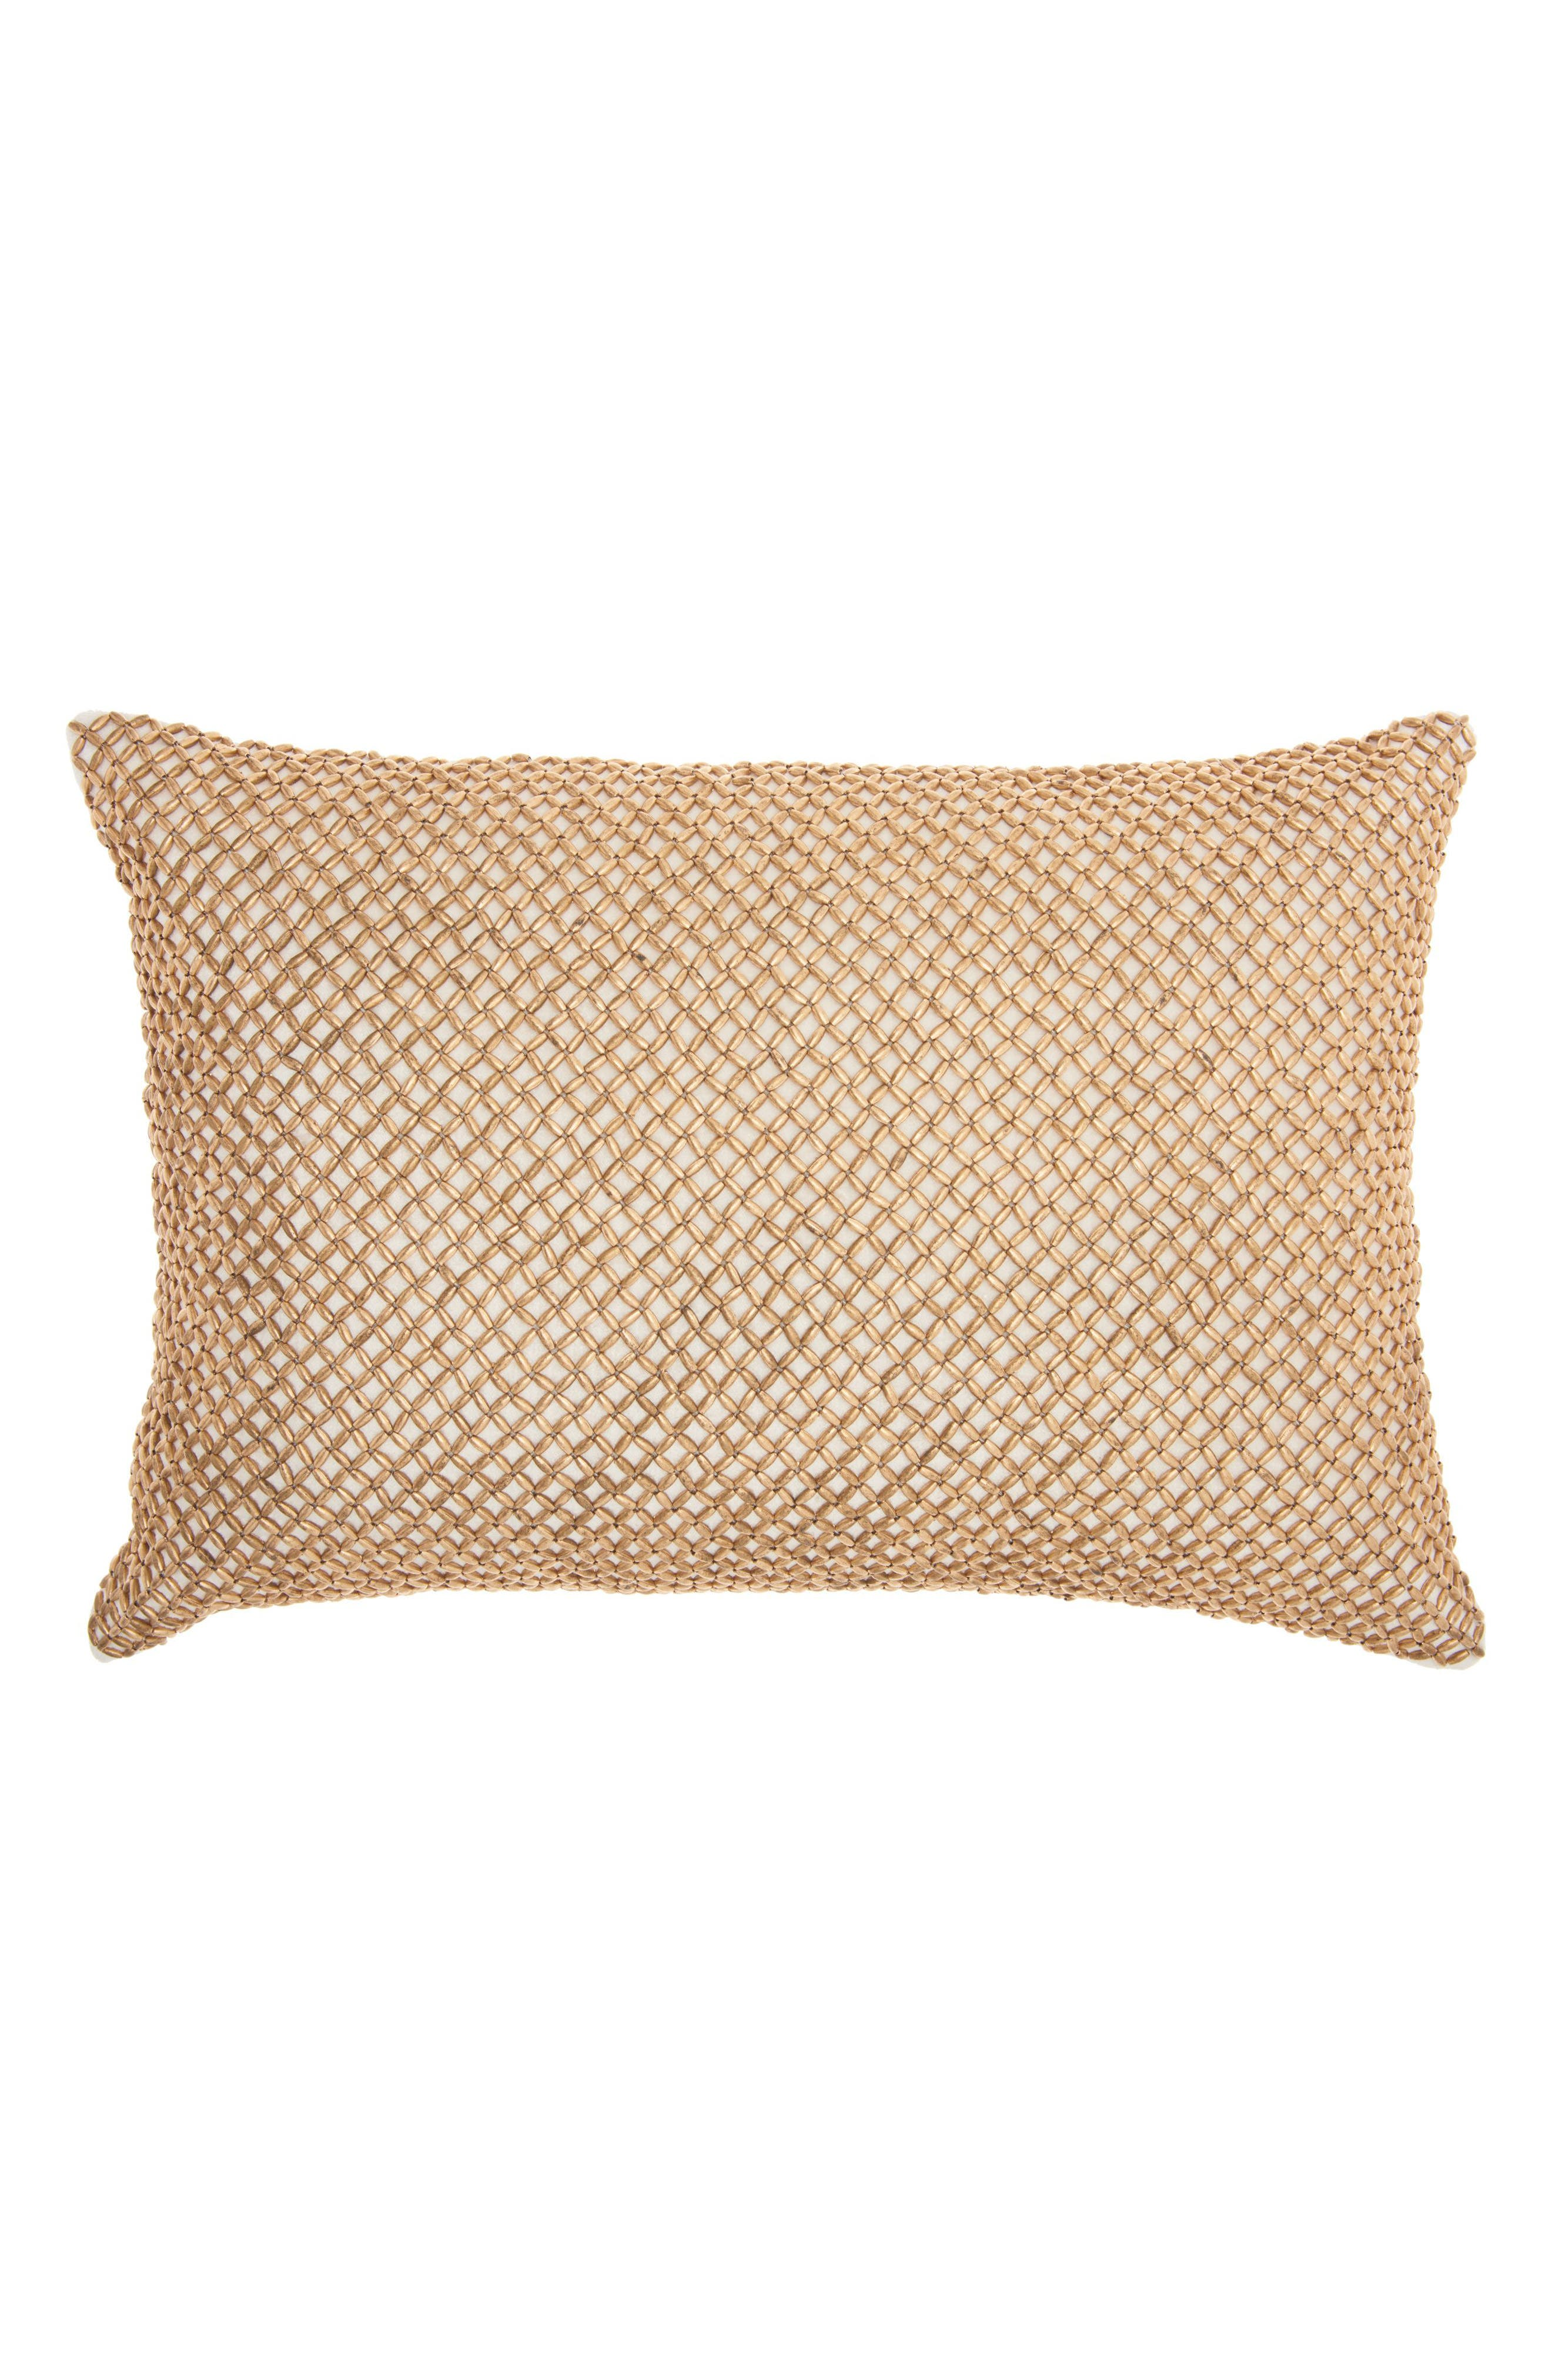 Alternate Image 1 Selected - Mina Victory Cobble Jewel Accent Pillow